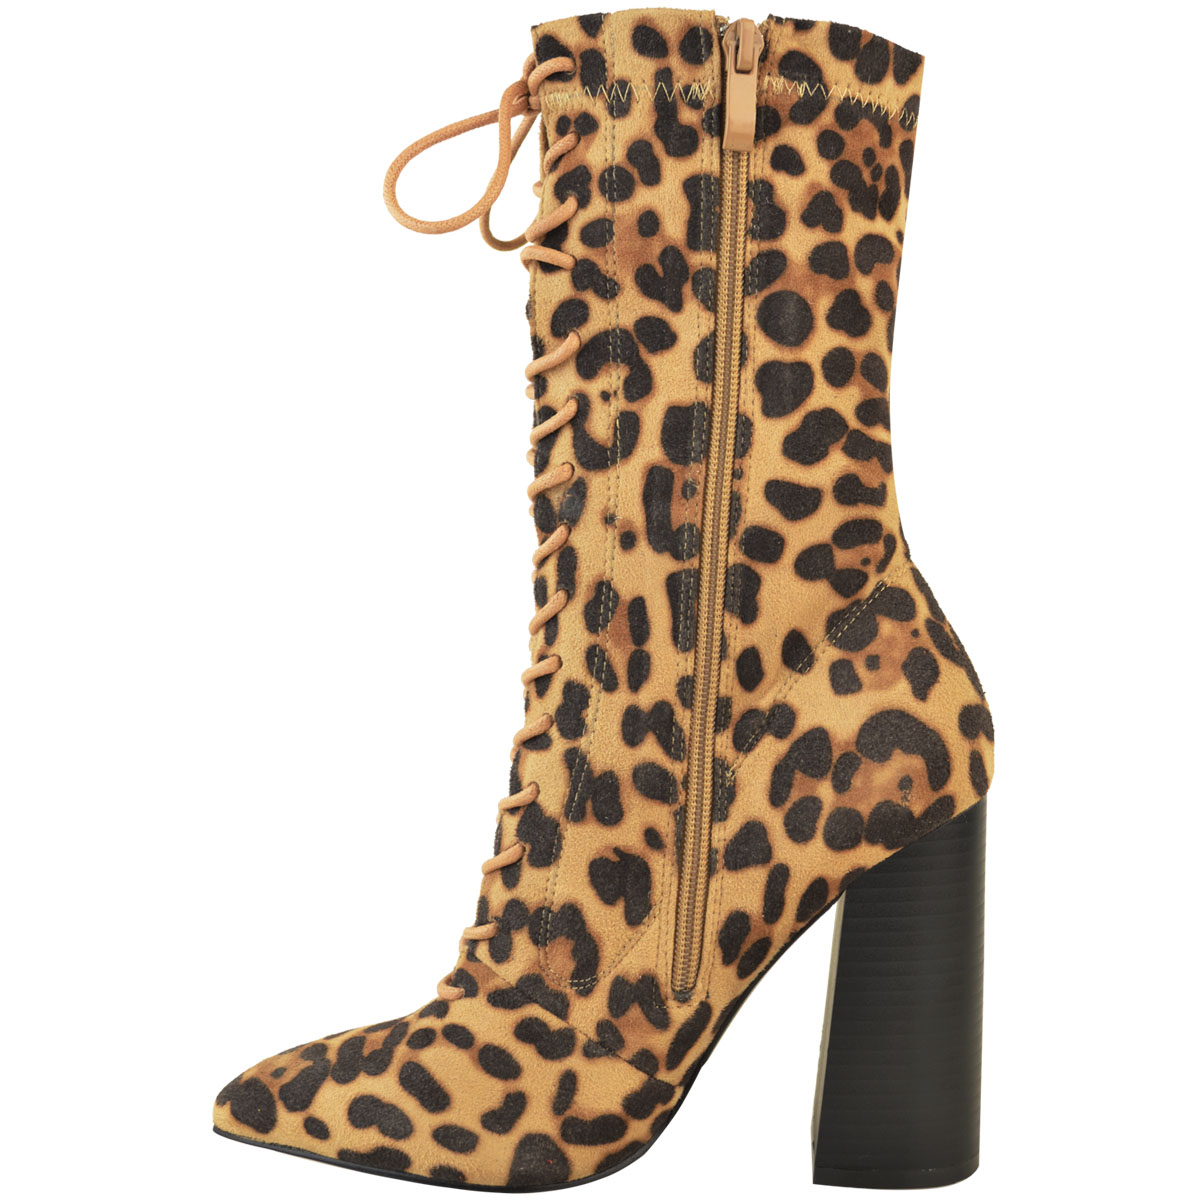 Womens-Ladies-New-Calf-Ankle-Boots-Lycra-Lace-Up-Shoes-Pointed-Toe-Stretch-Size miniatuur 16